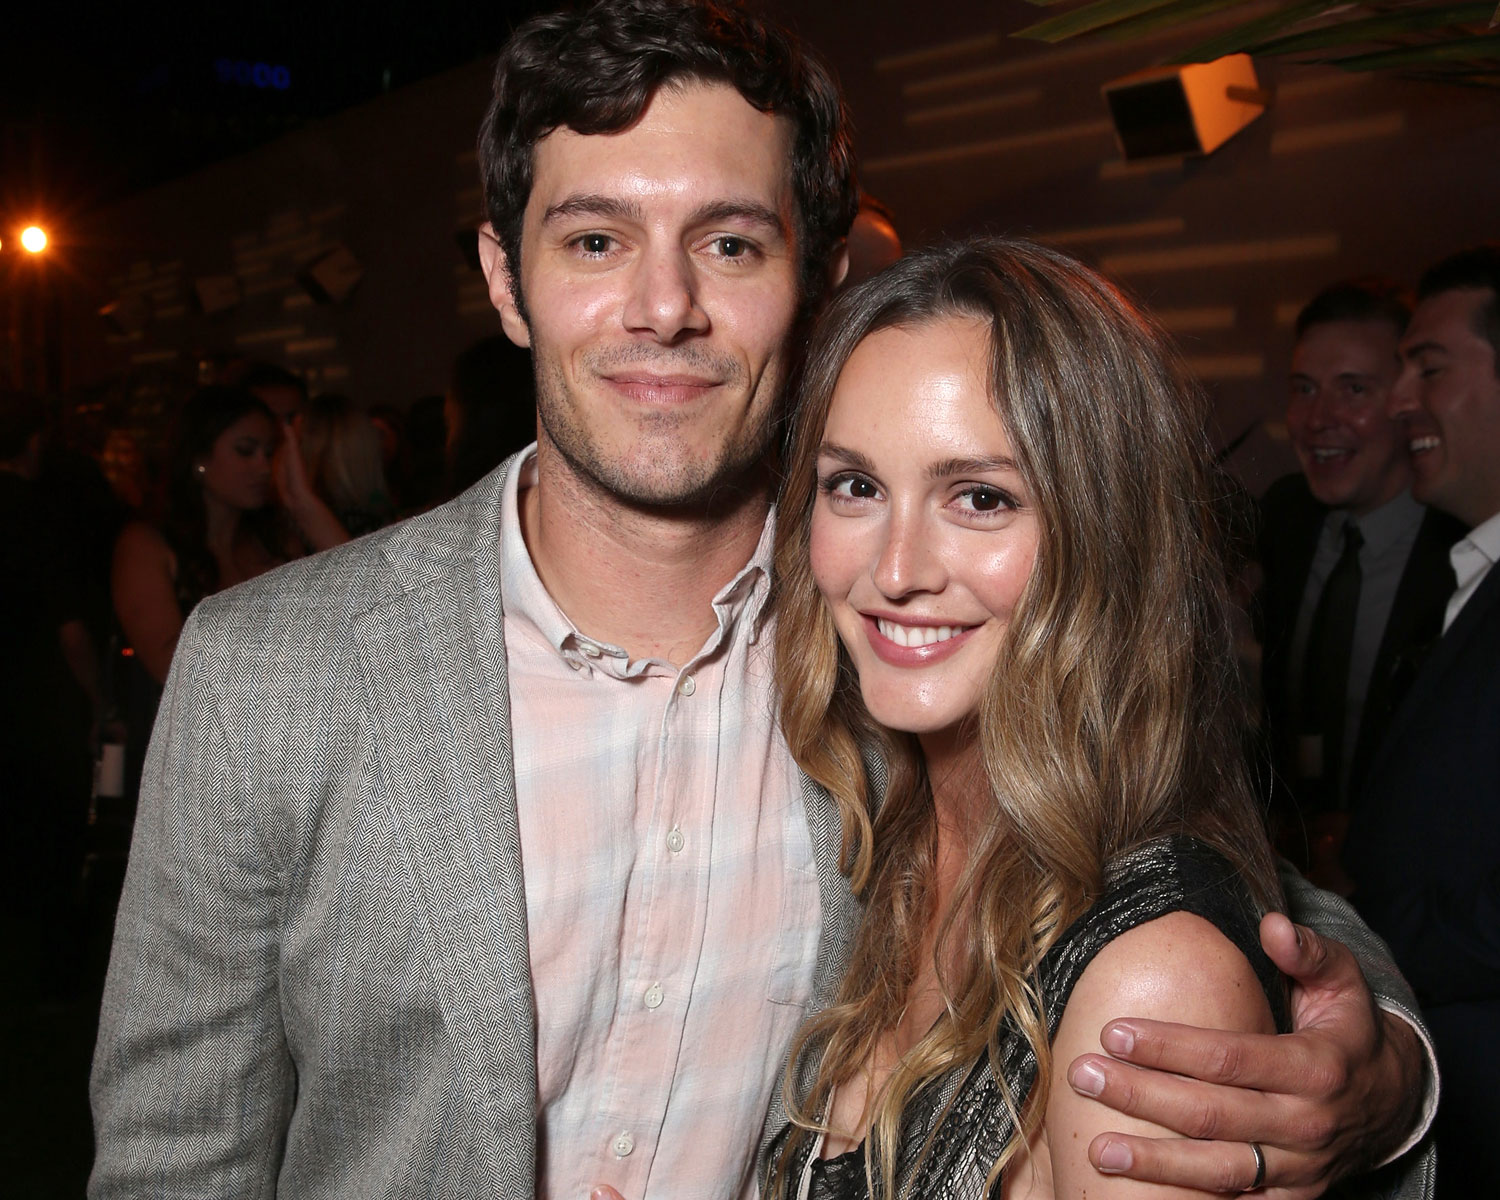 Leighton Meester Husband Adam Brody Make Adorable Appearance